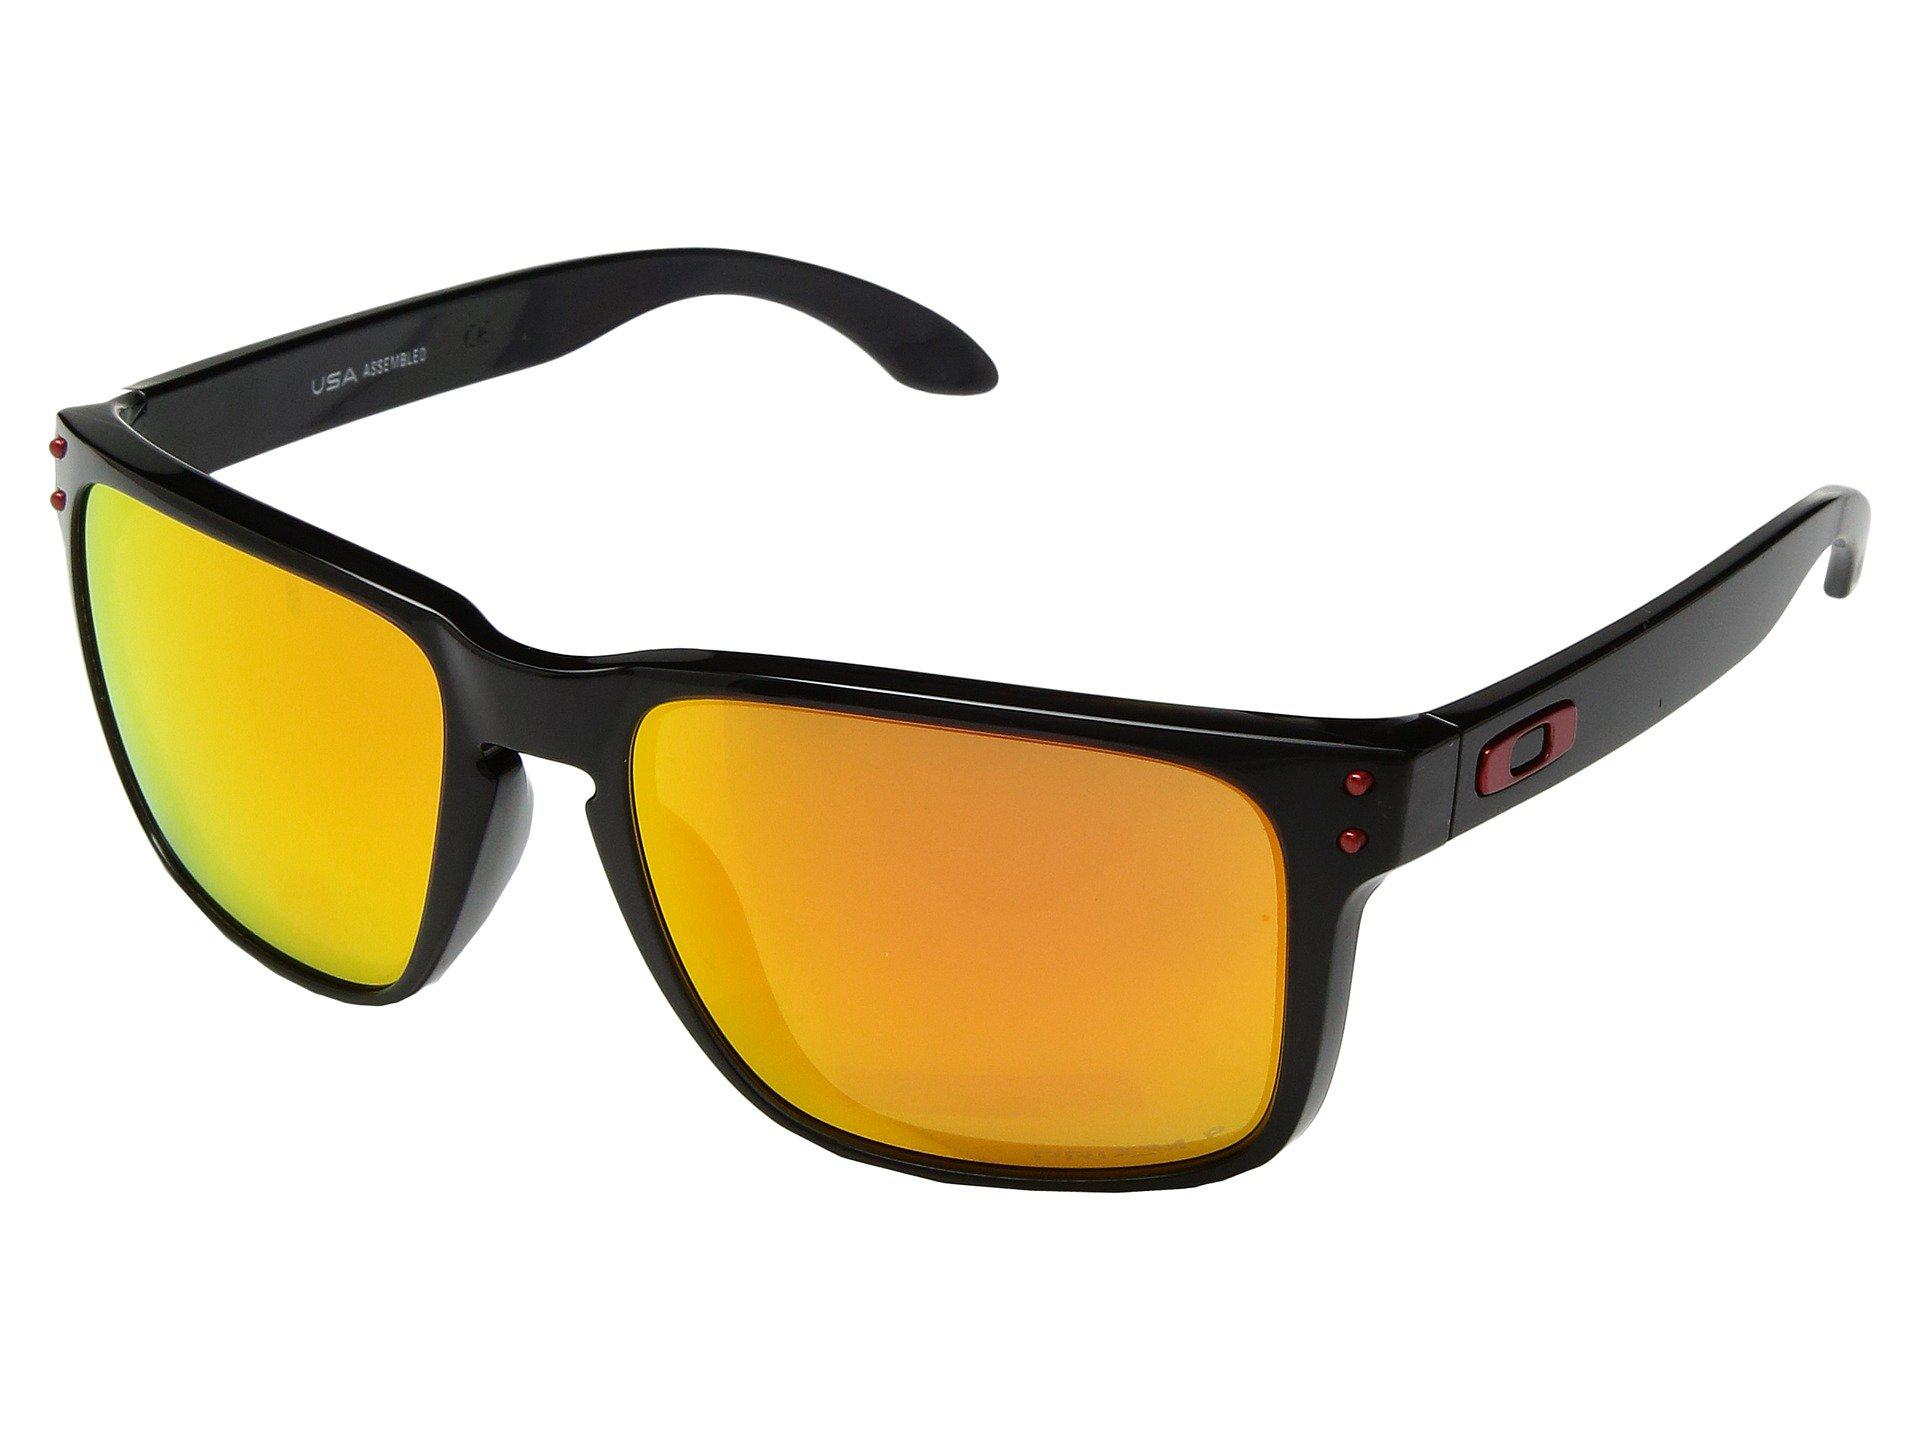 4296fa2f38 Lyst - Oakley Holbrook Xl Sgh Exclusive in Black for Men